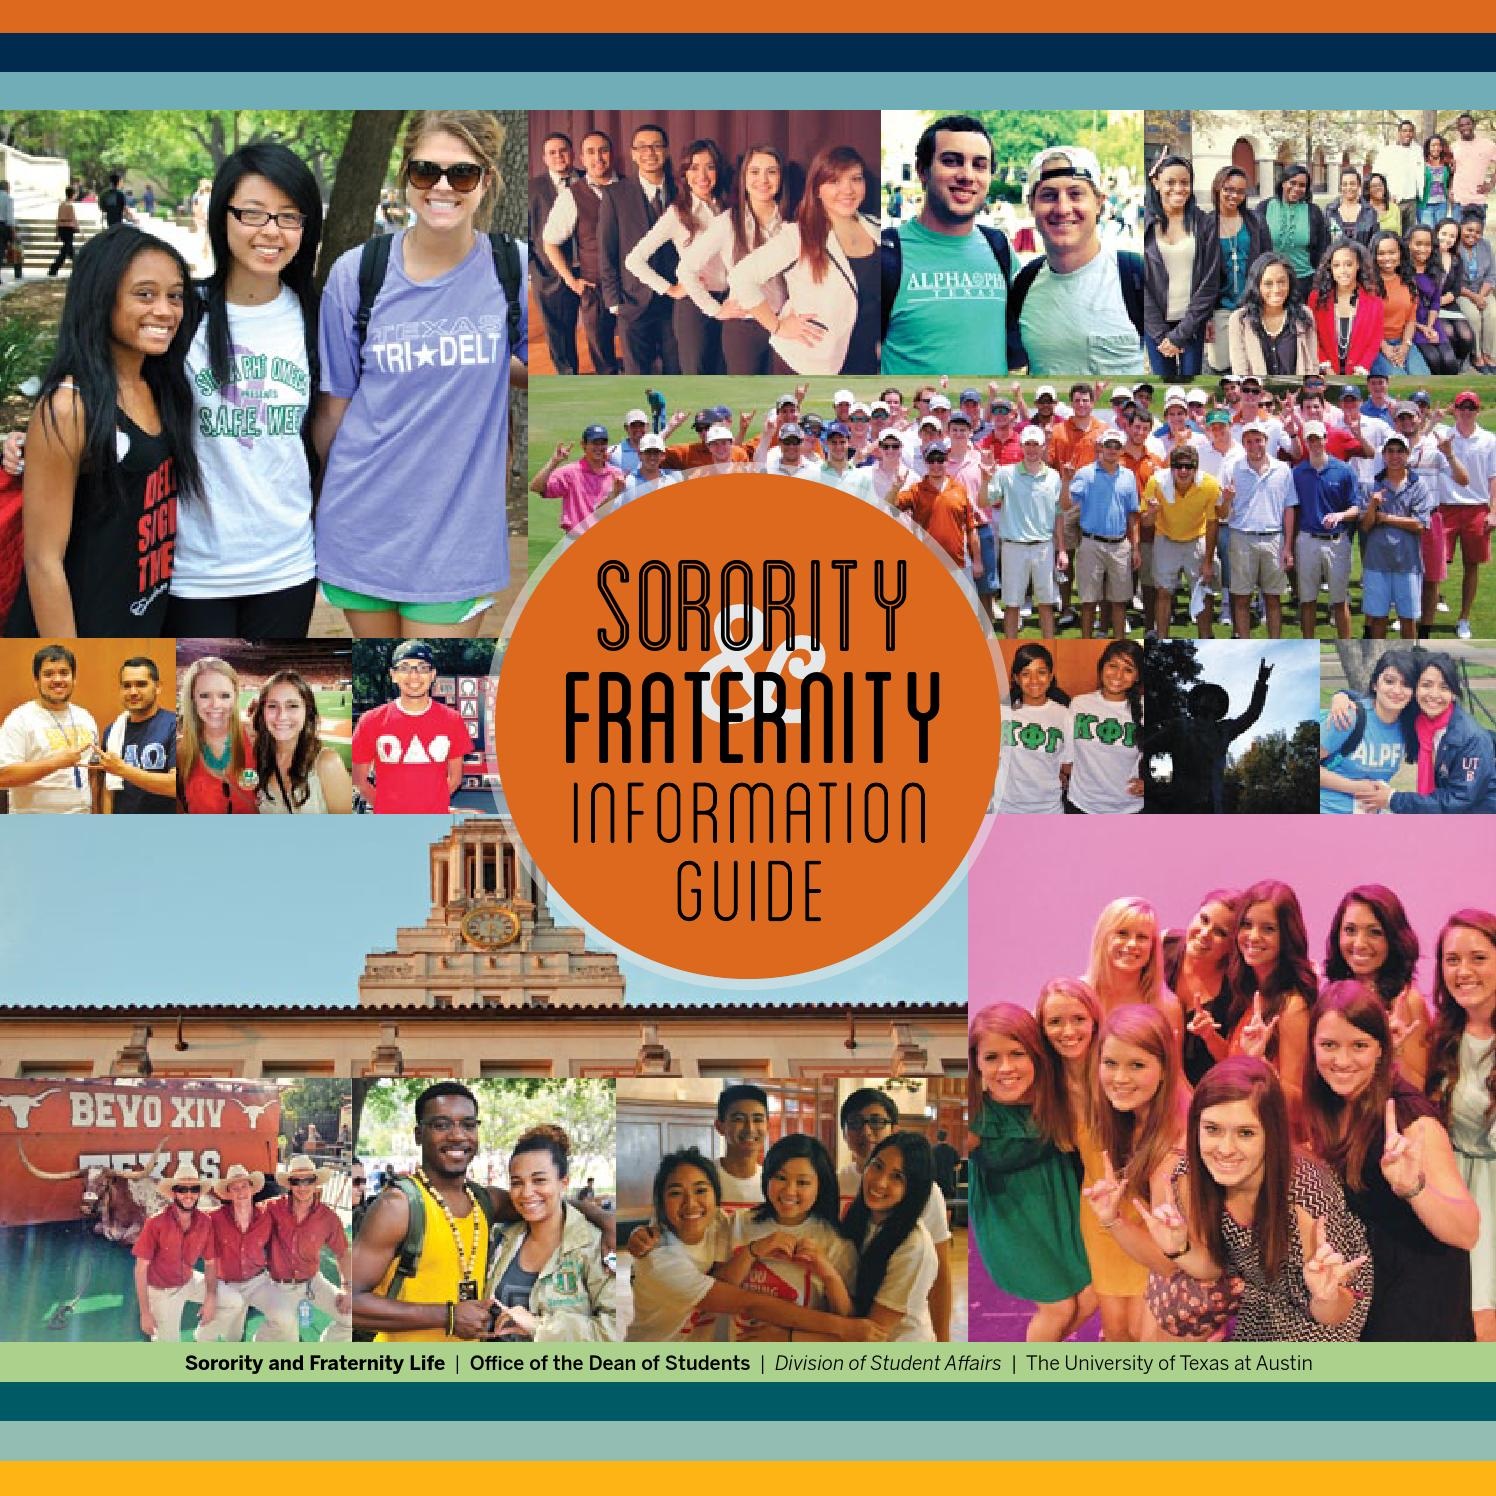 fraternity fraternities and sororities and 100 The mission of the fraternity & sorority life office is to foster the learning and development of students who affiliate with the 36 social fraternities and sororities at california polytechnic state university, san luis obispo.